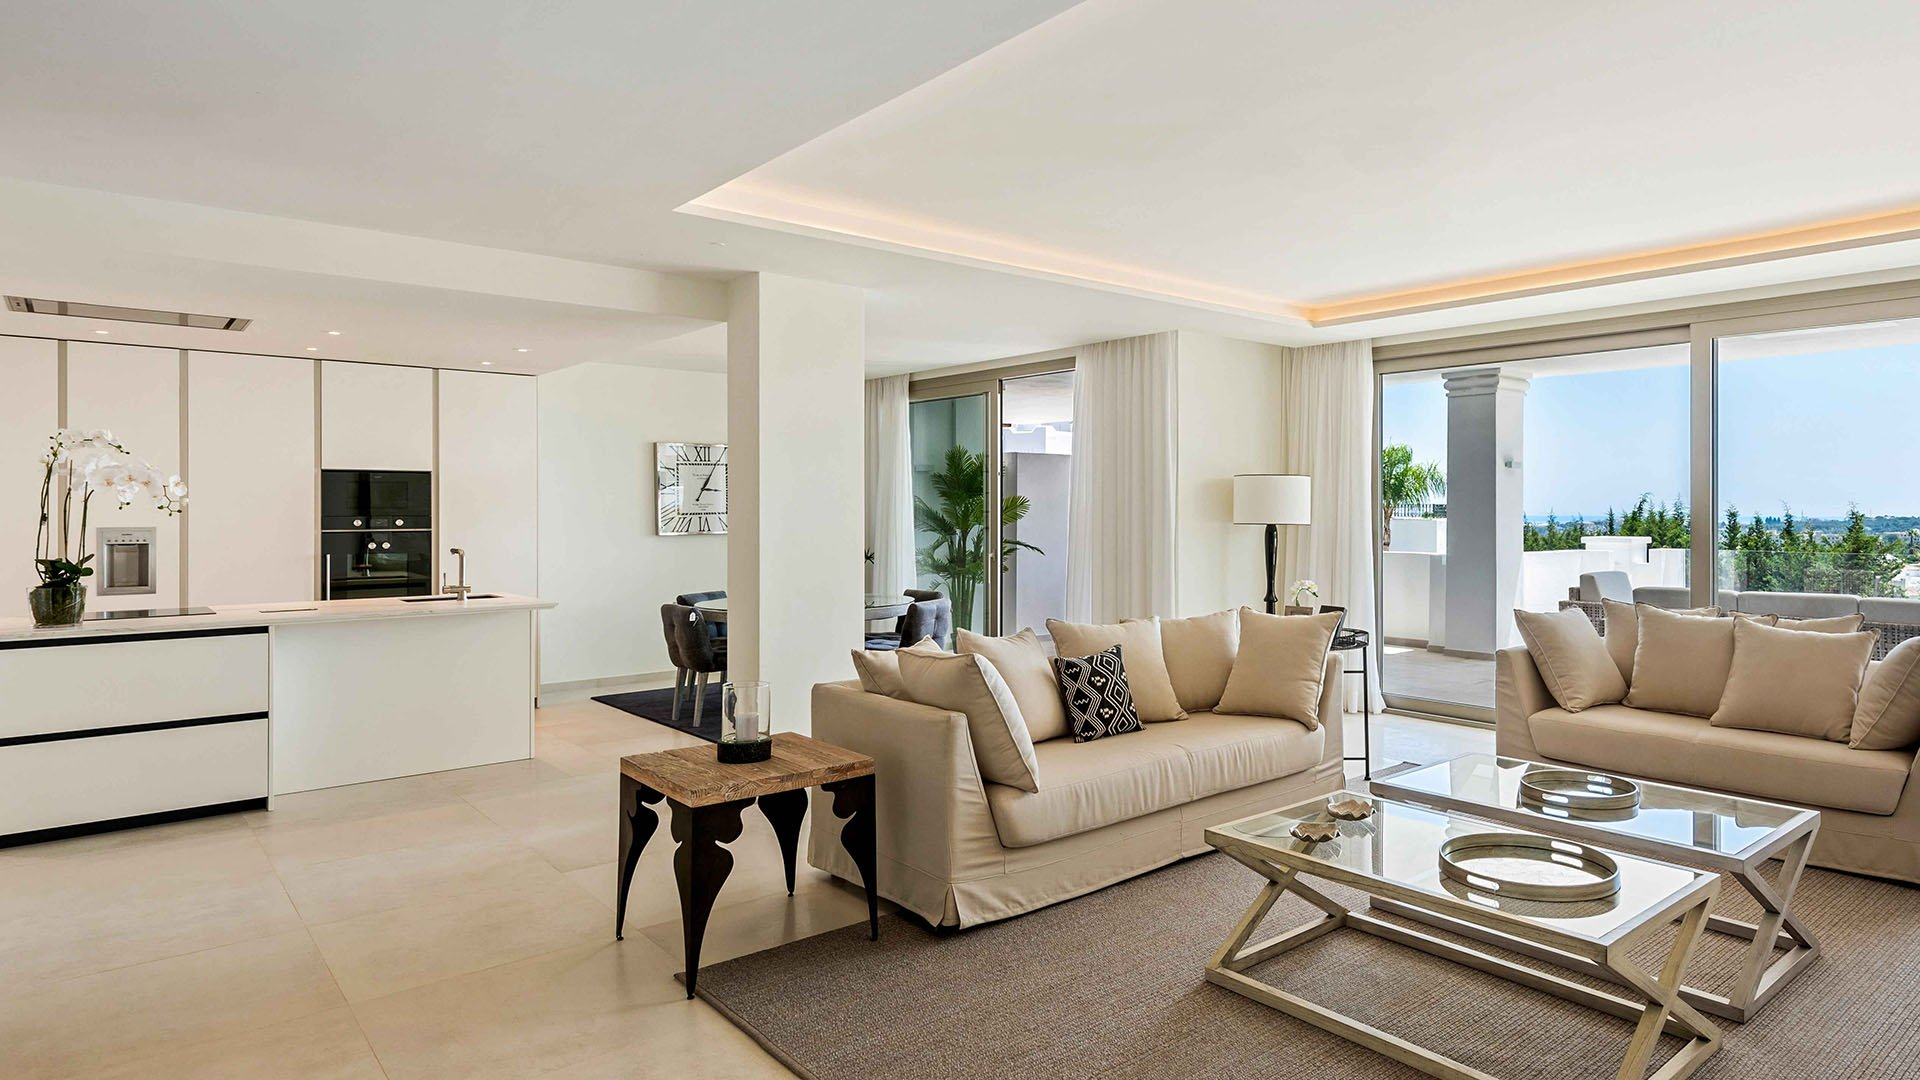 Nine Lions Residences: Spacious luxury apartments in Nueva Andalucía